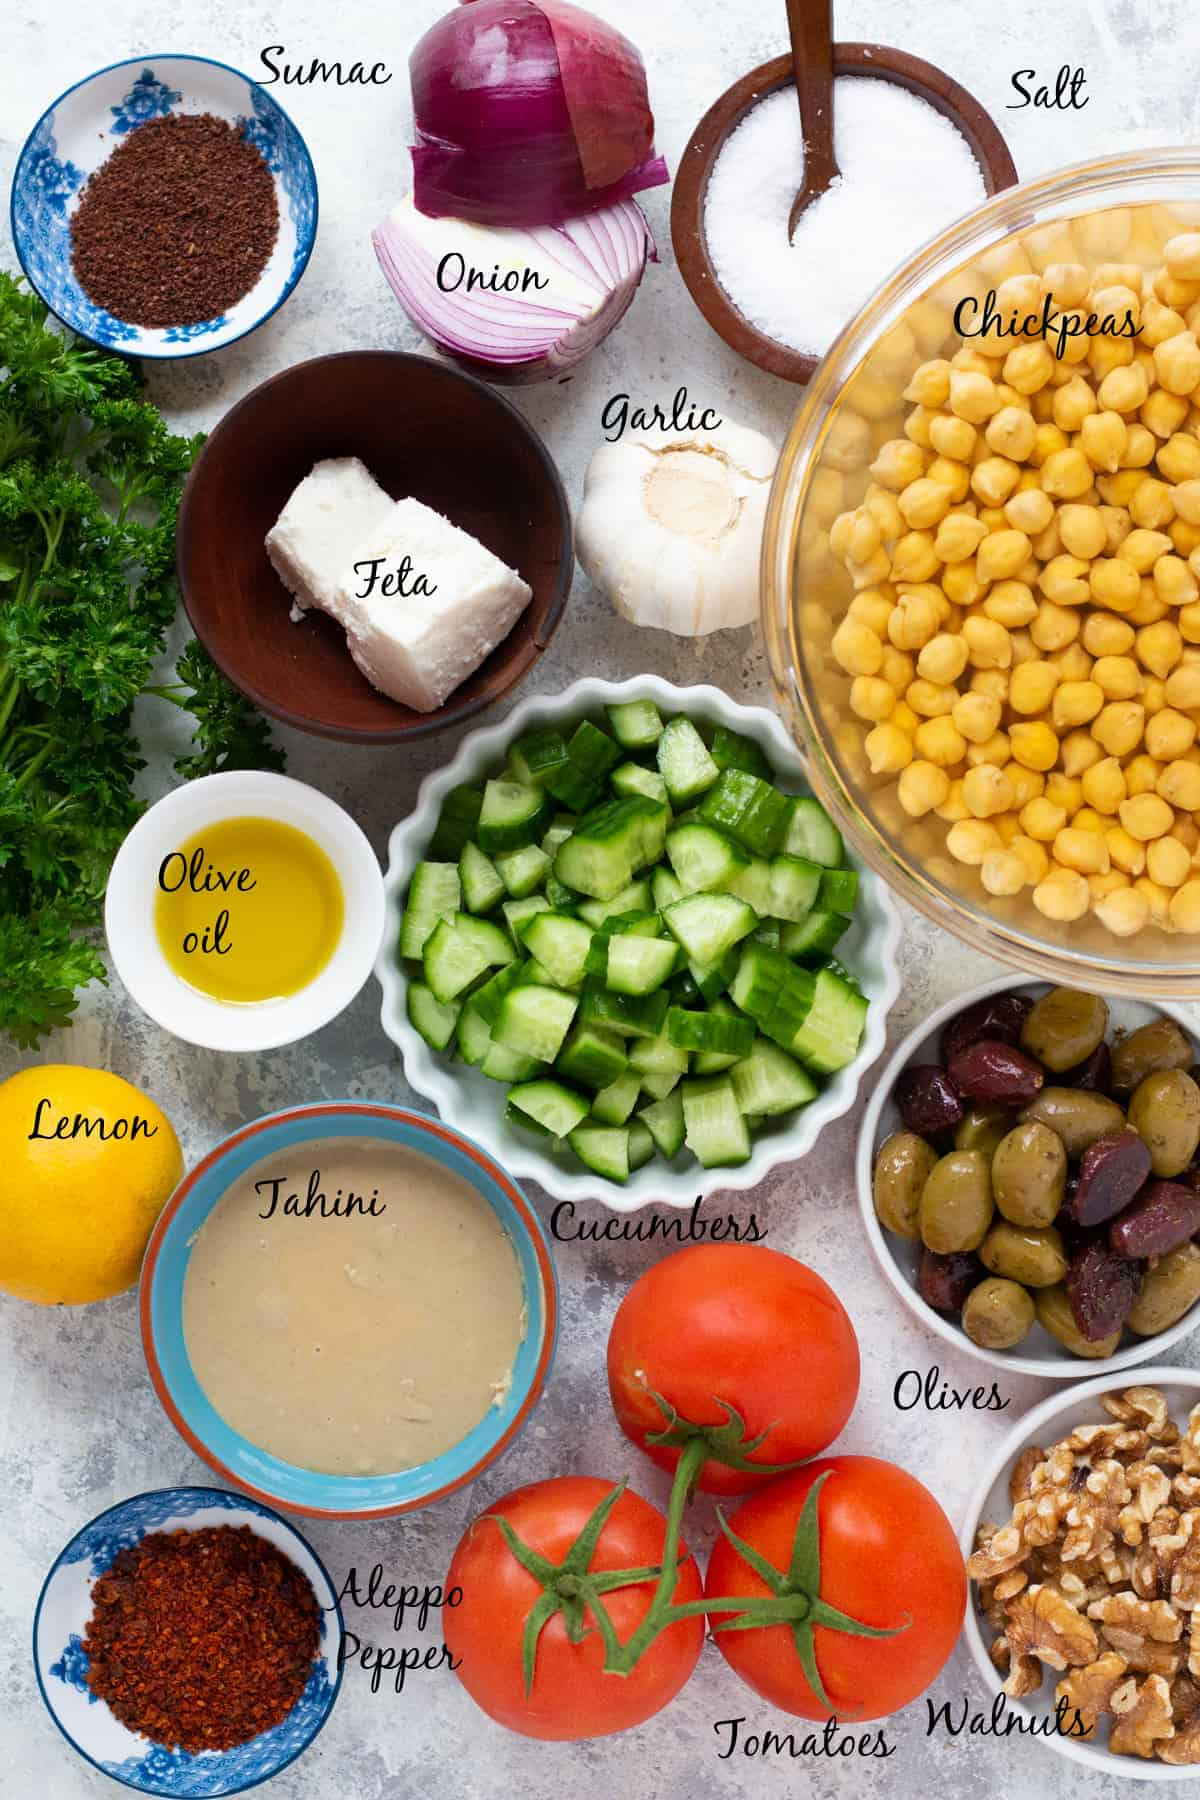 For this recipe you need hummus, feta, onion, sumac, olives, cucumber, olive oil, lemon, garlic, tomato and herbs.